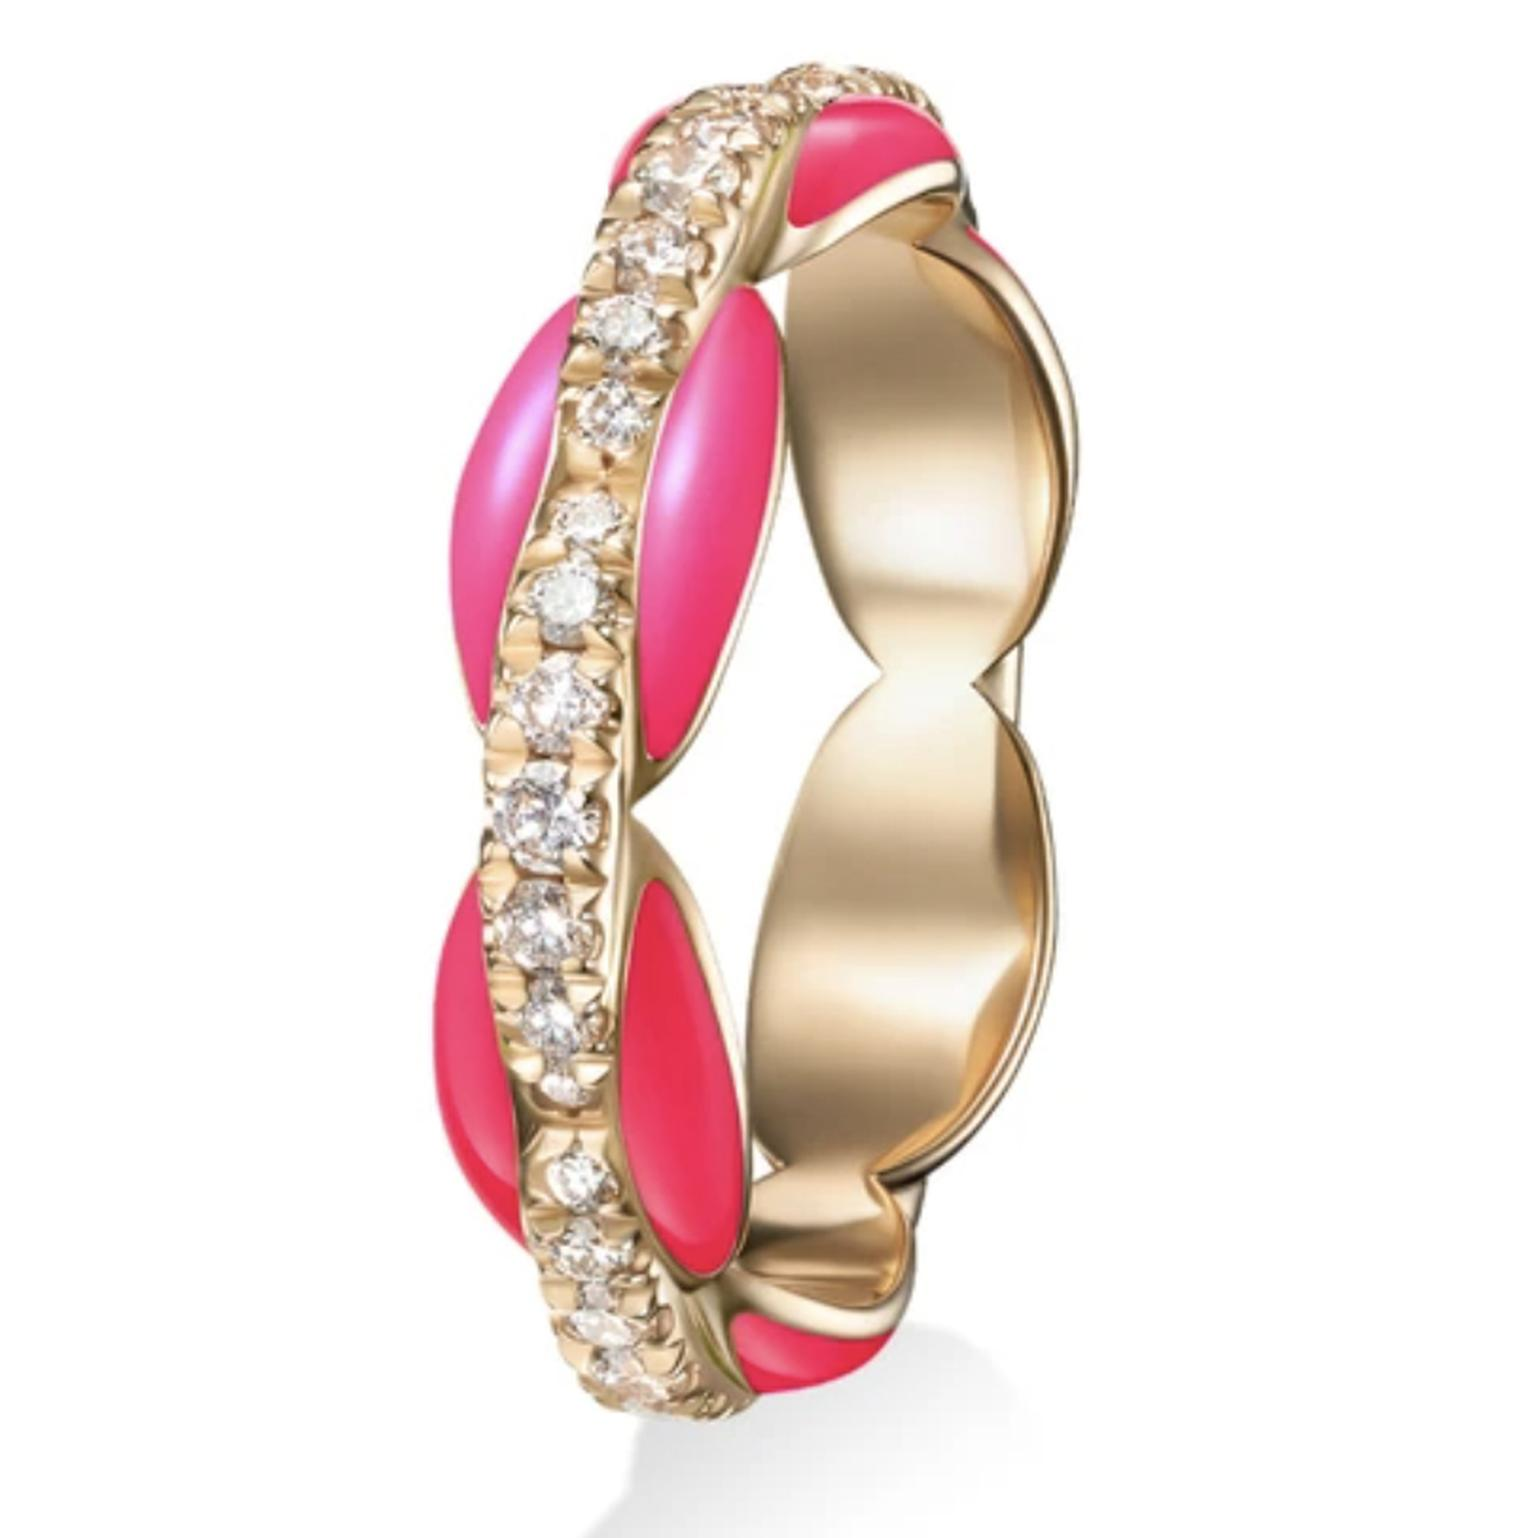 MELISSA KAYE Ada diamond, enamel & 18kt rose-gold ring  £3,660